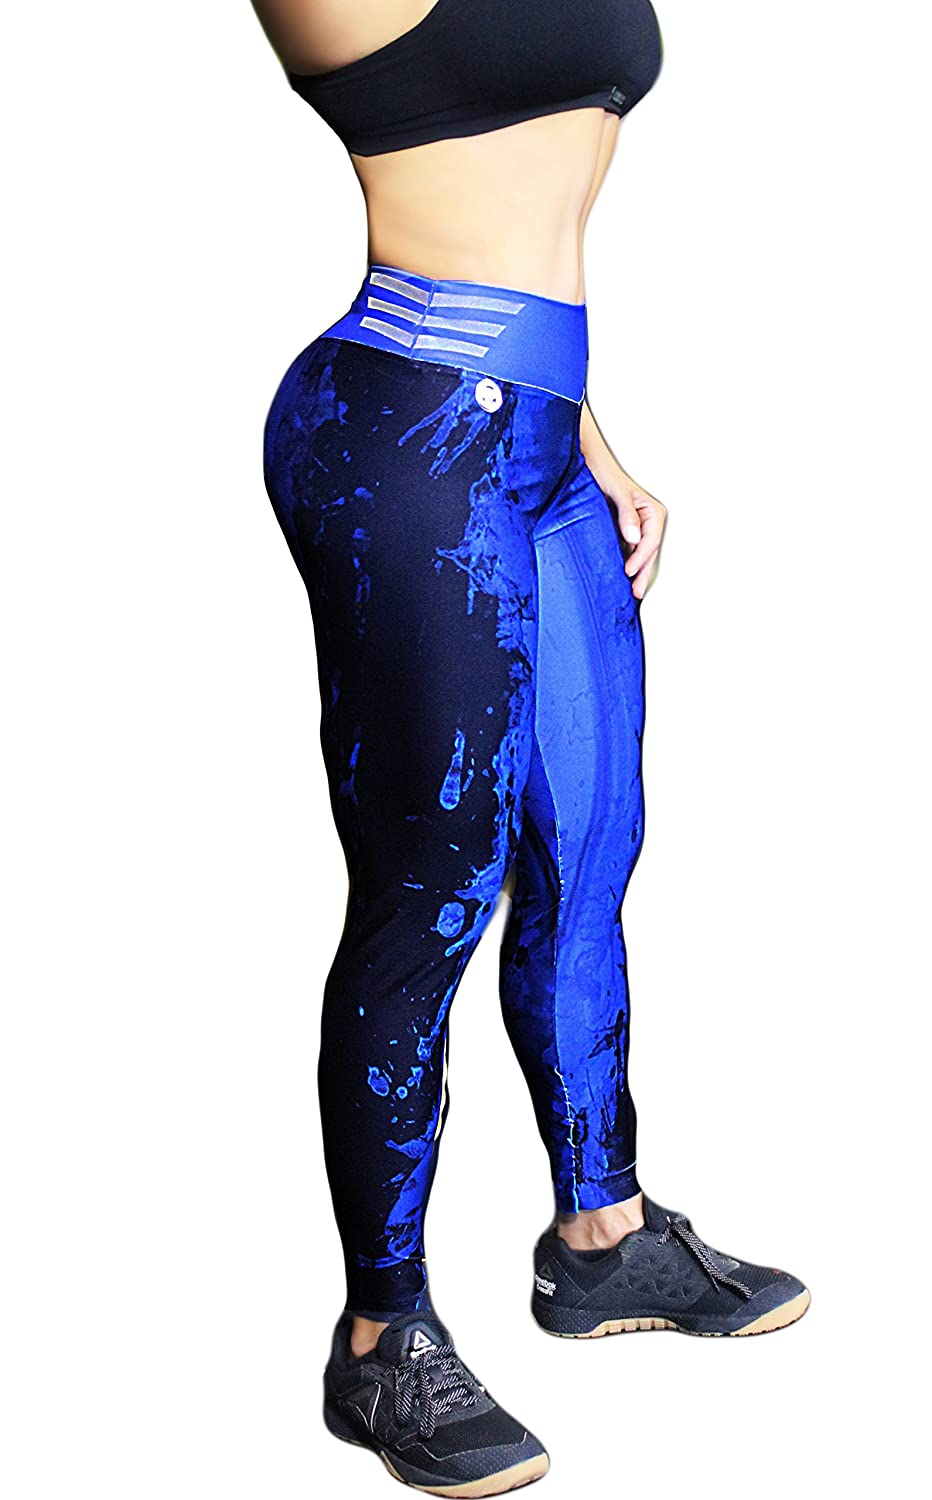 Tights Leggings for Gym Running THIAGO REAL Womens Power Compression Legging WEIGT Lifting and Crossfit Athletes